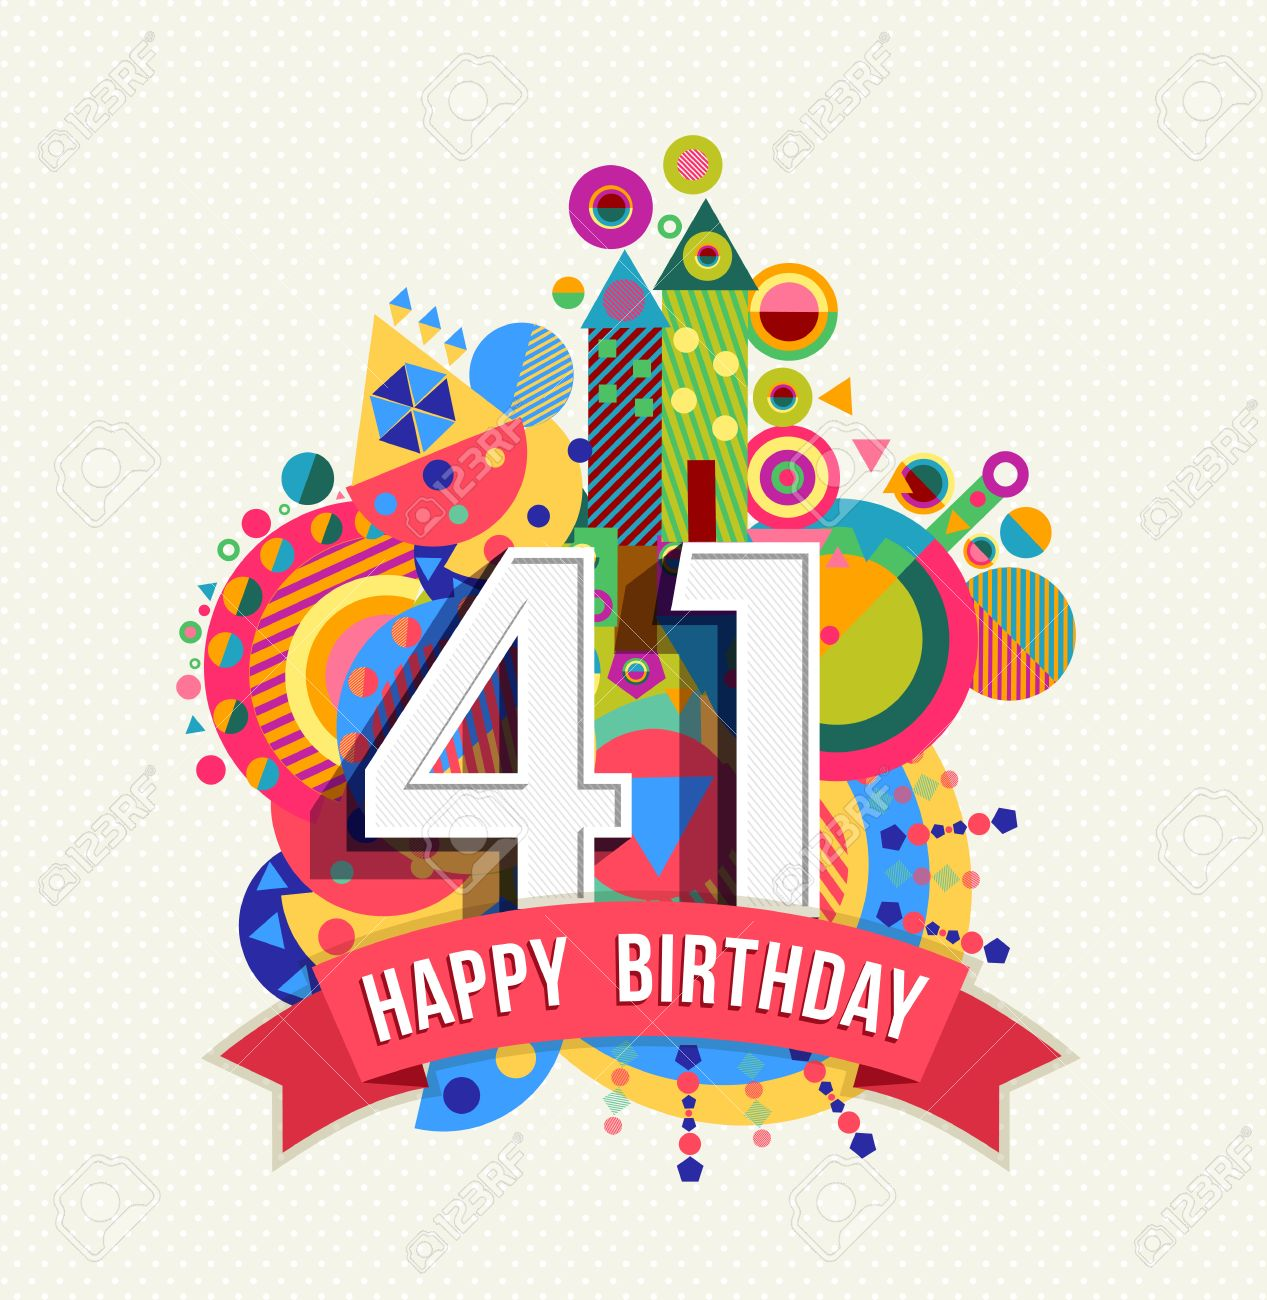 happy birthday forty one 41 year royalty free cliparts vectors and